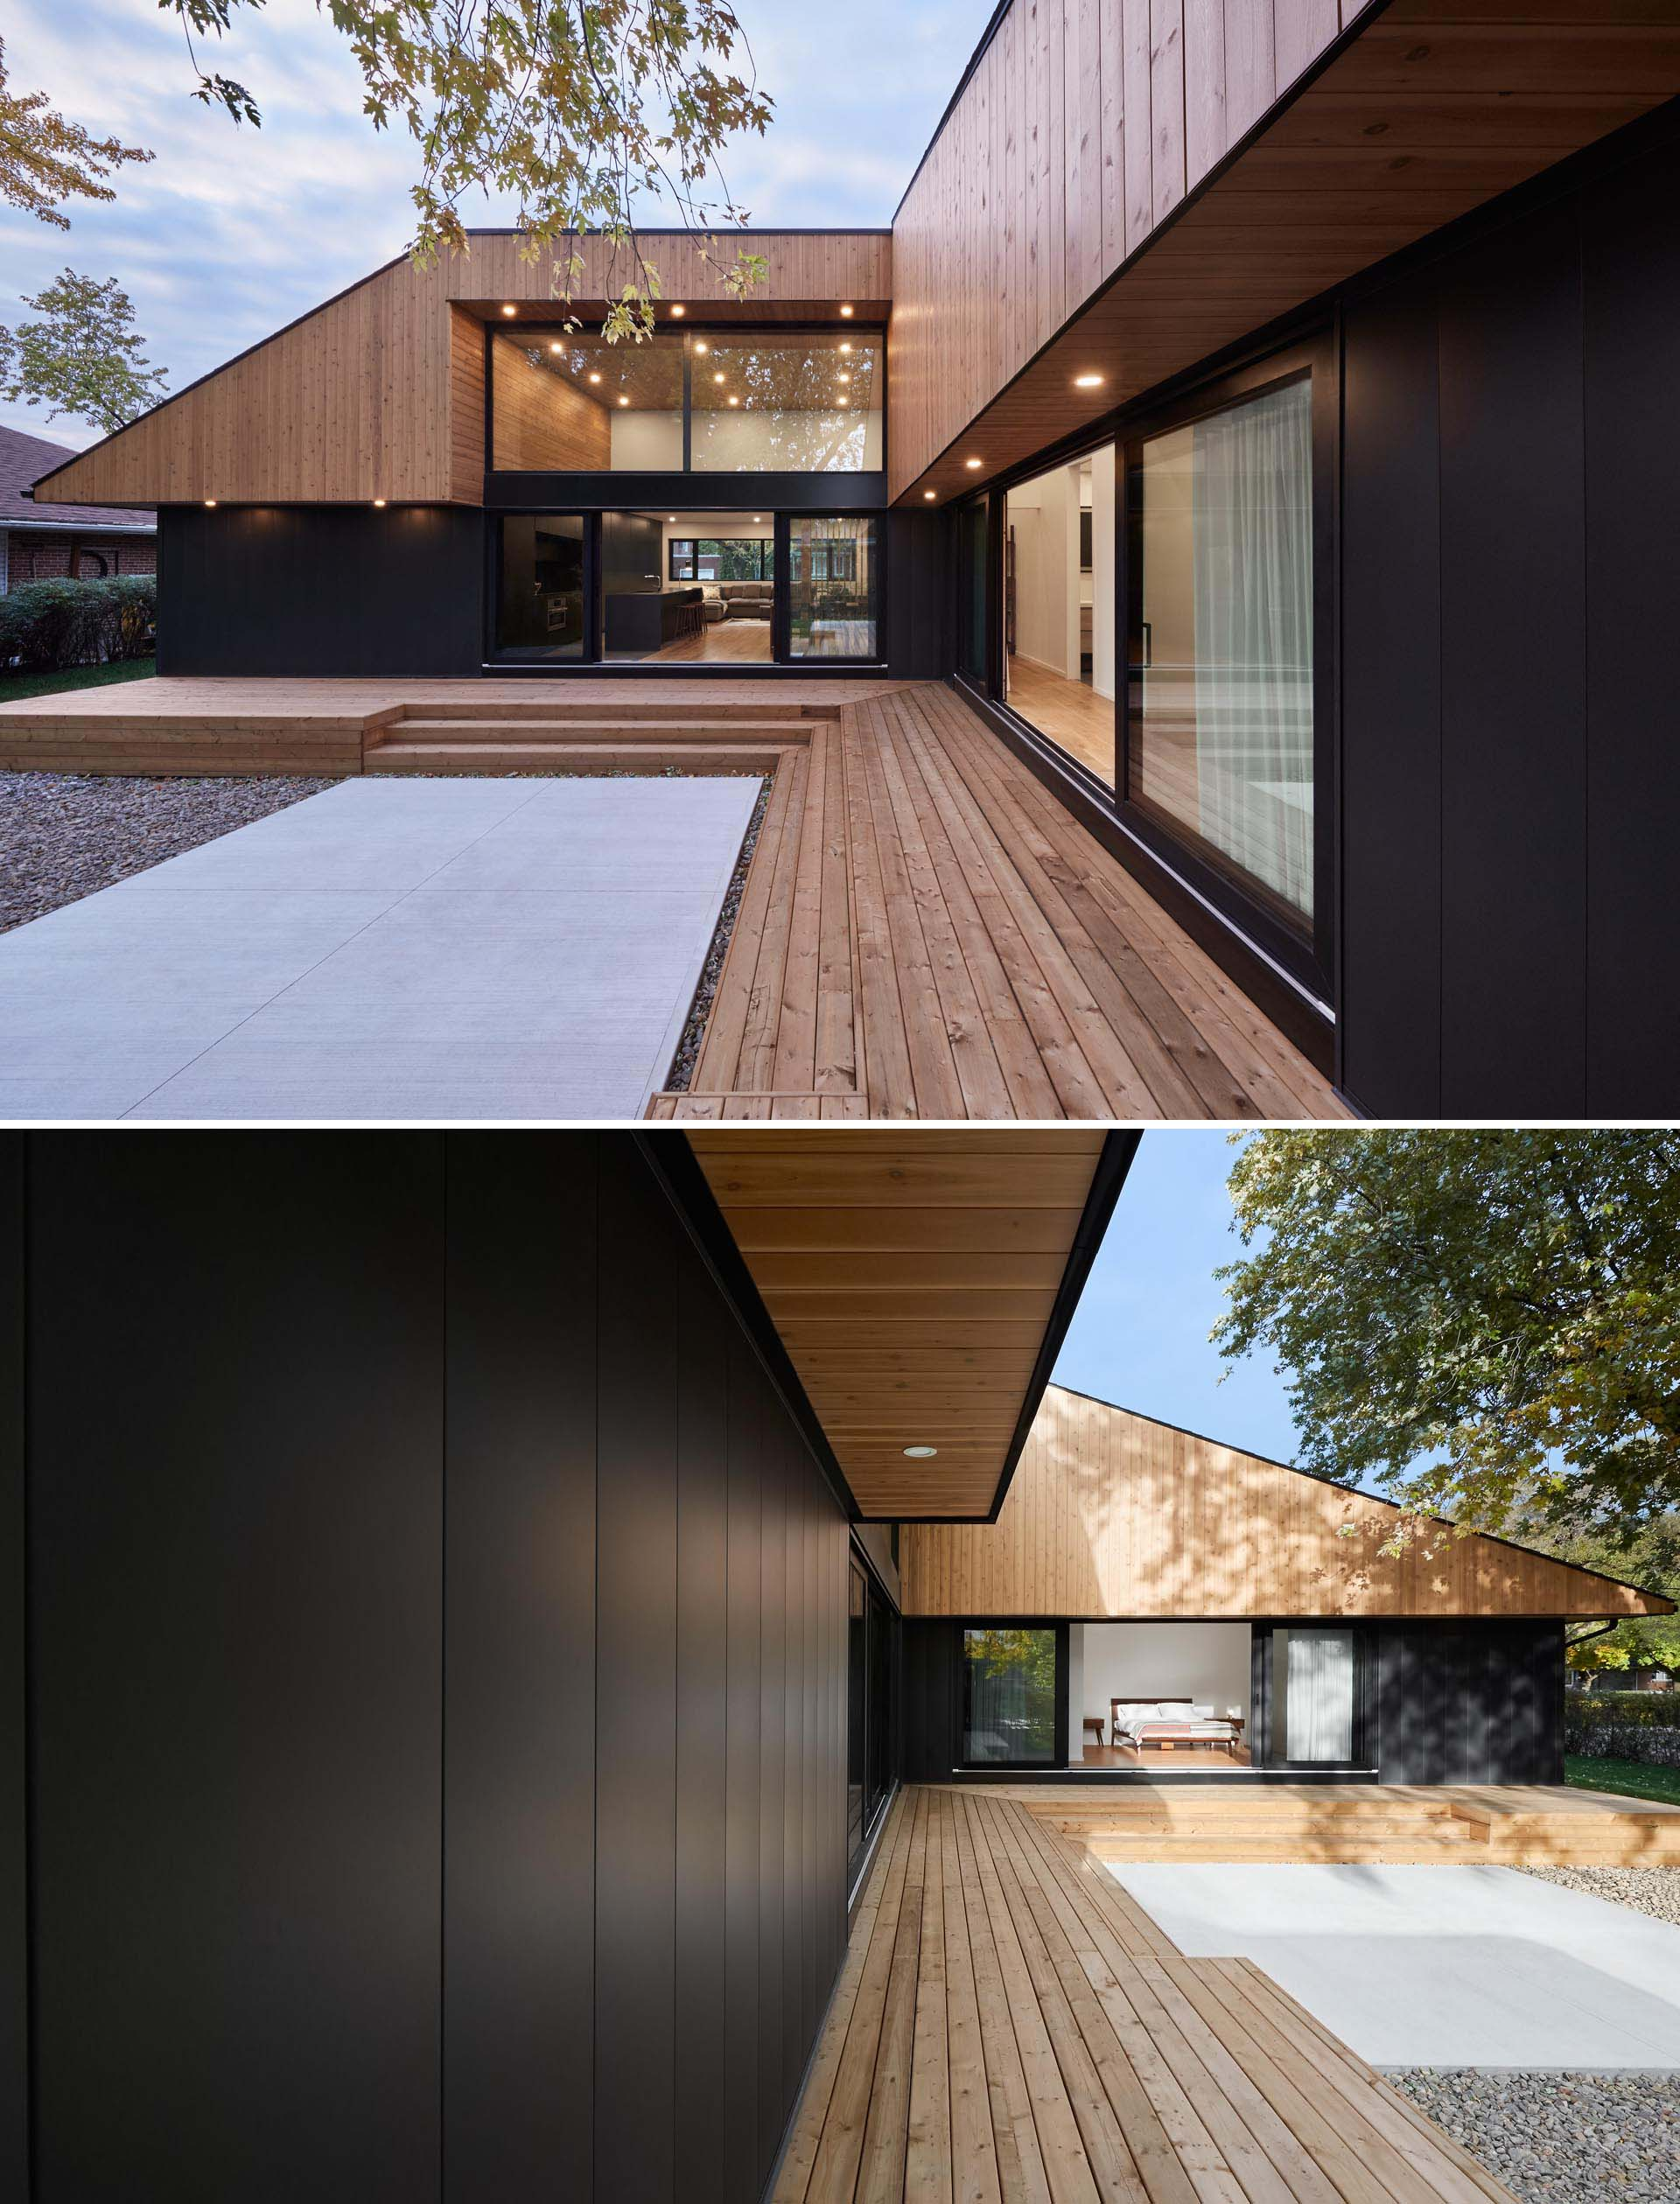 A modern home with high ceilings, wood outdoor steps, and a black framed sliding lass door.